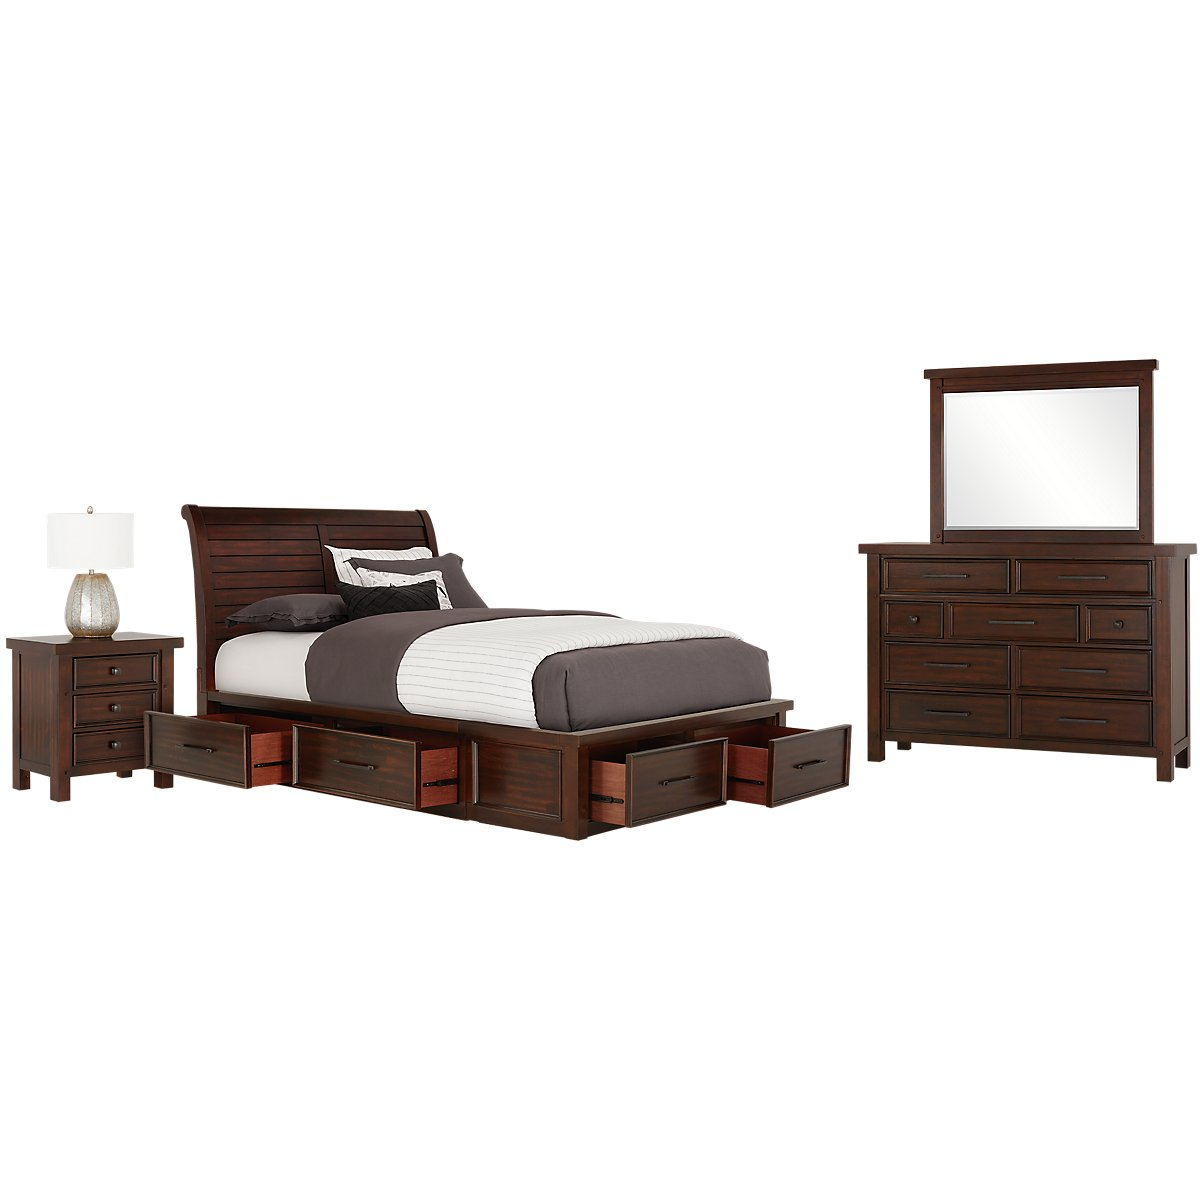 City furniture napa dark tone six drawer sleigh storage bed for Furniture n more beds